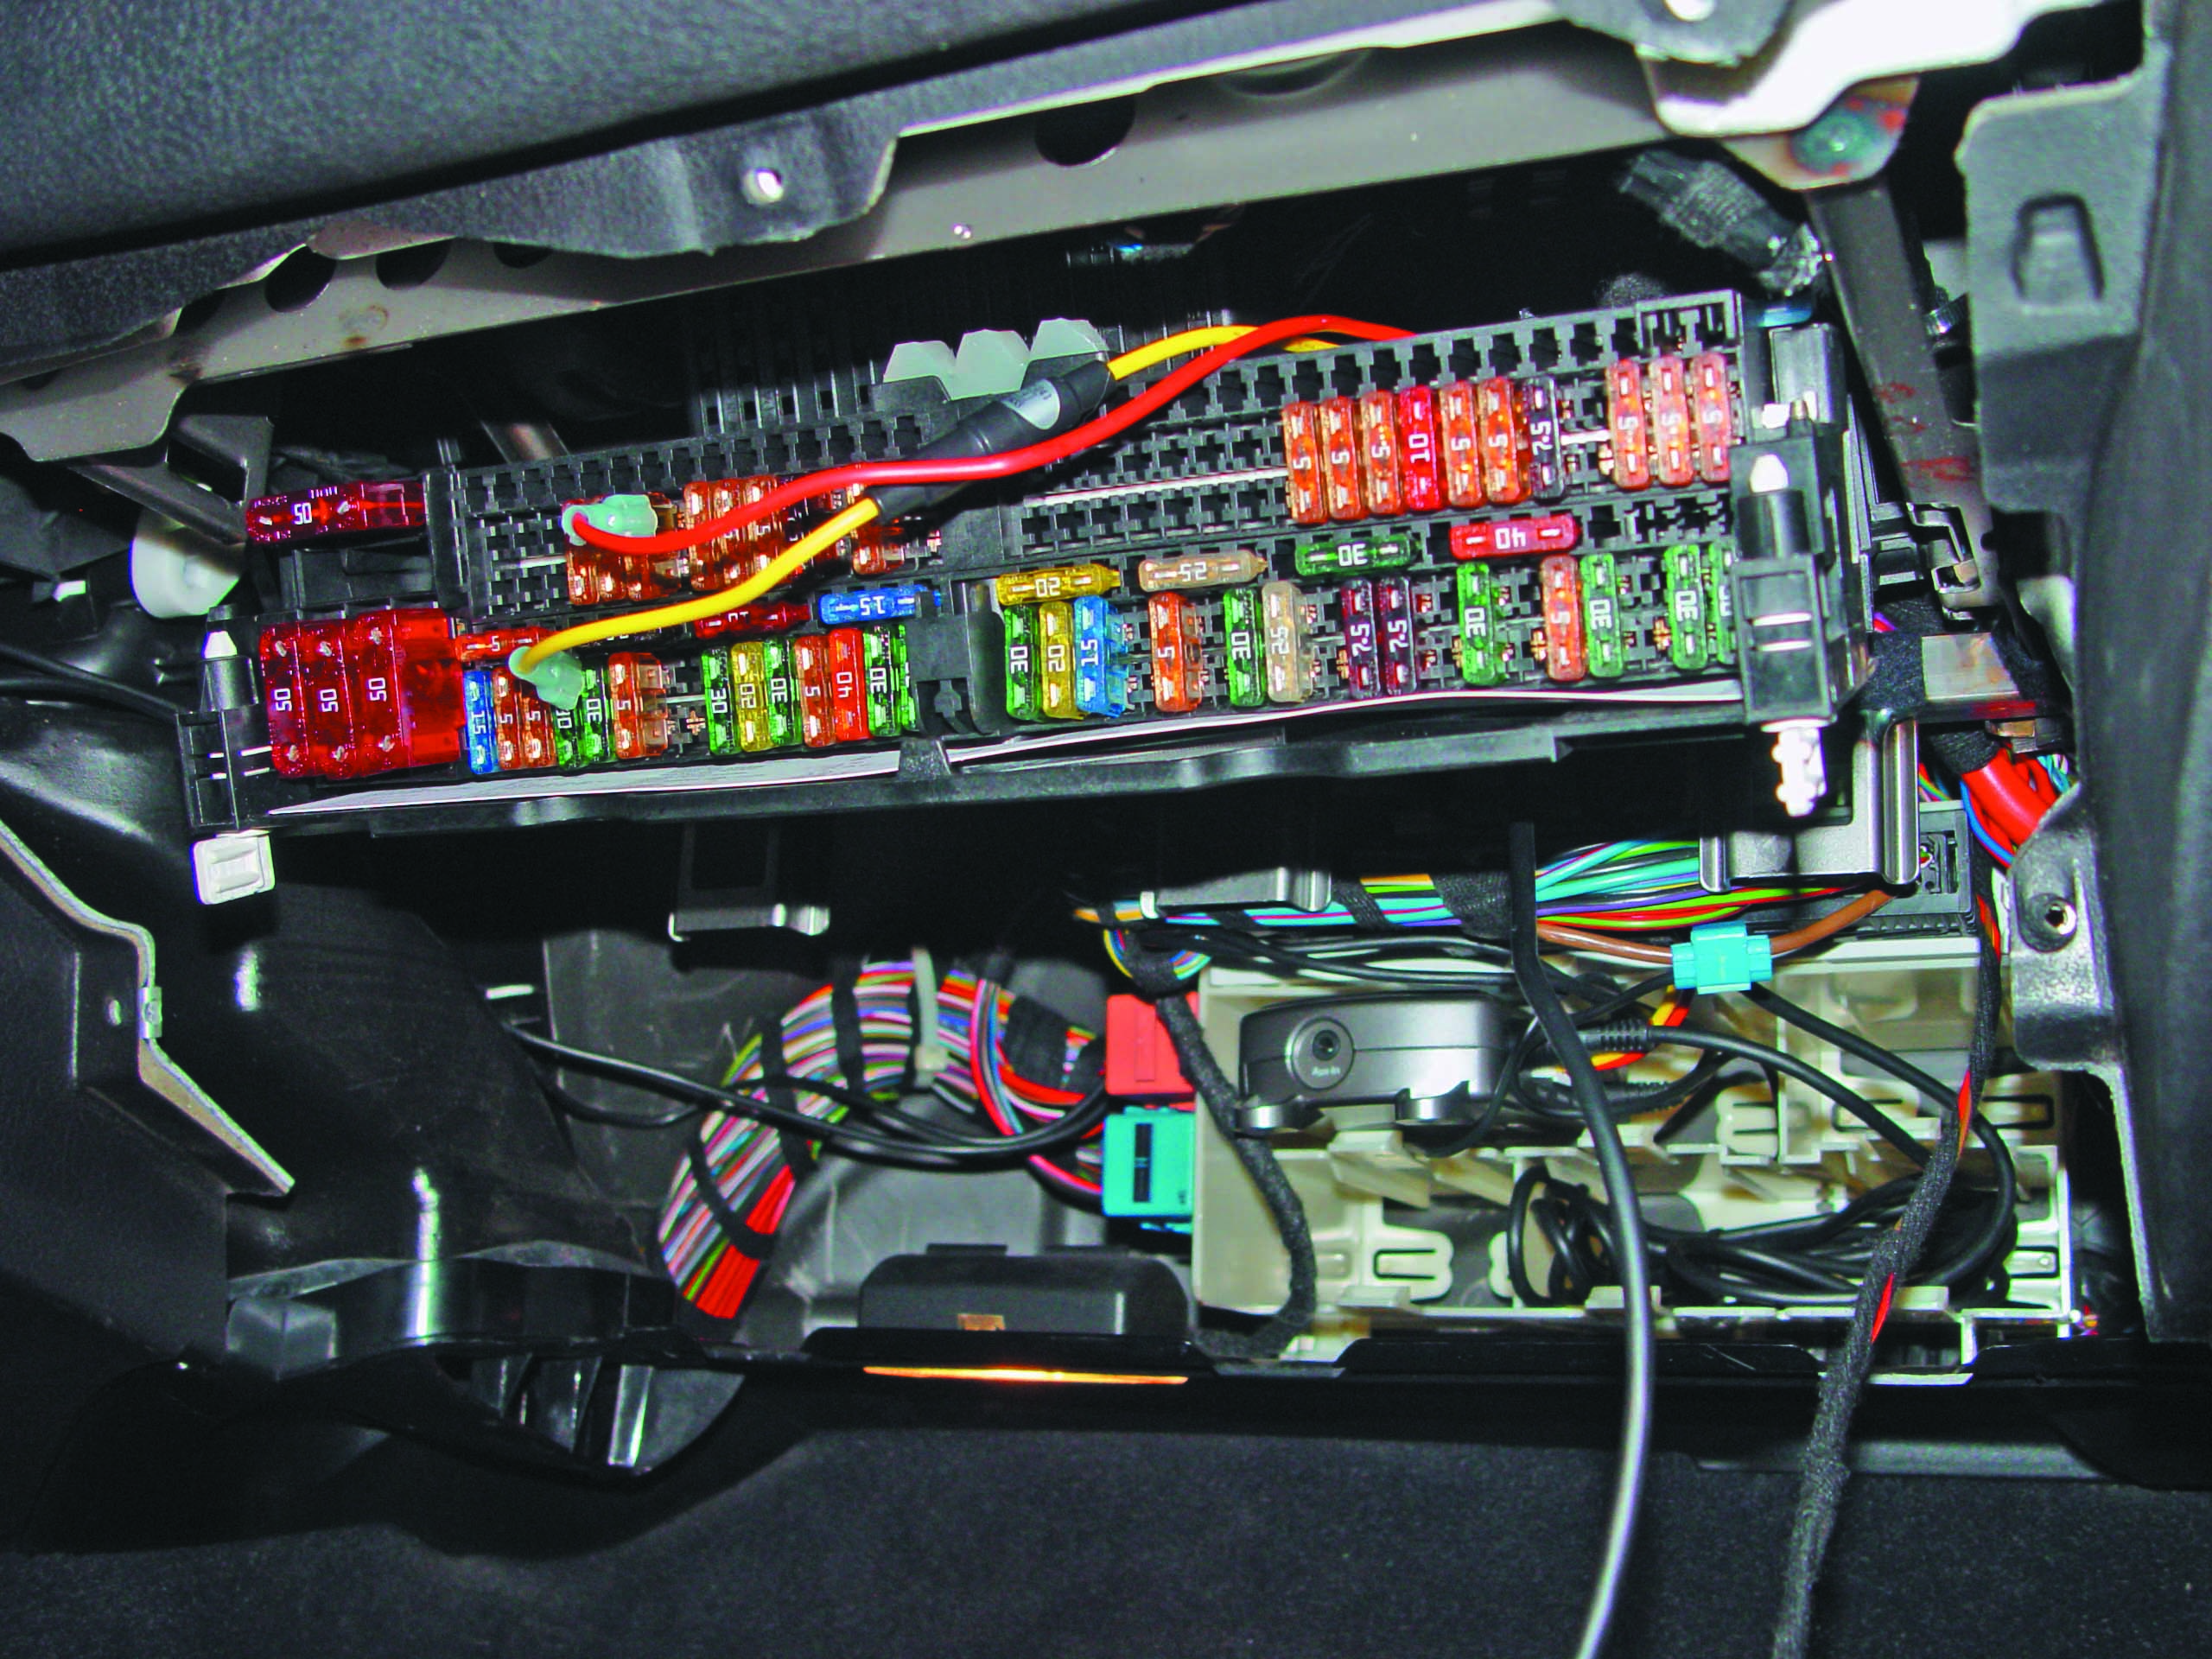 fuse box in volvo s40 location box fuse bmw s40 #10